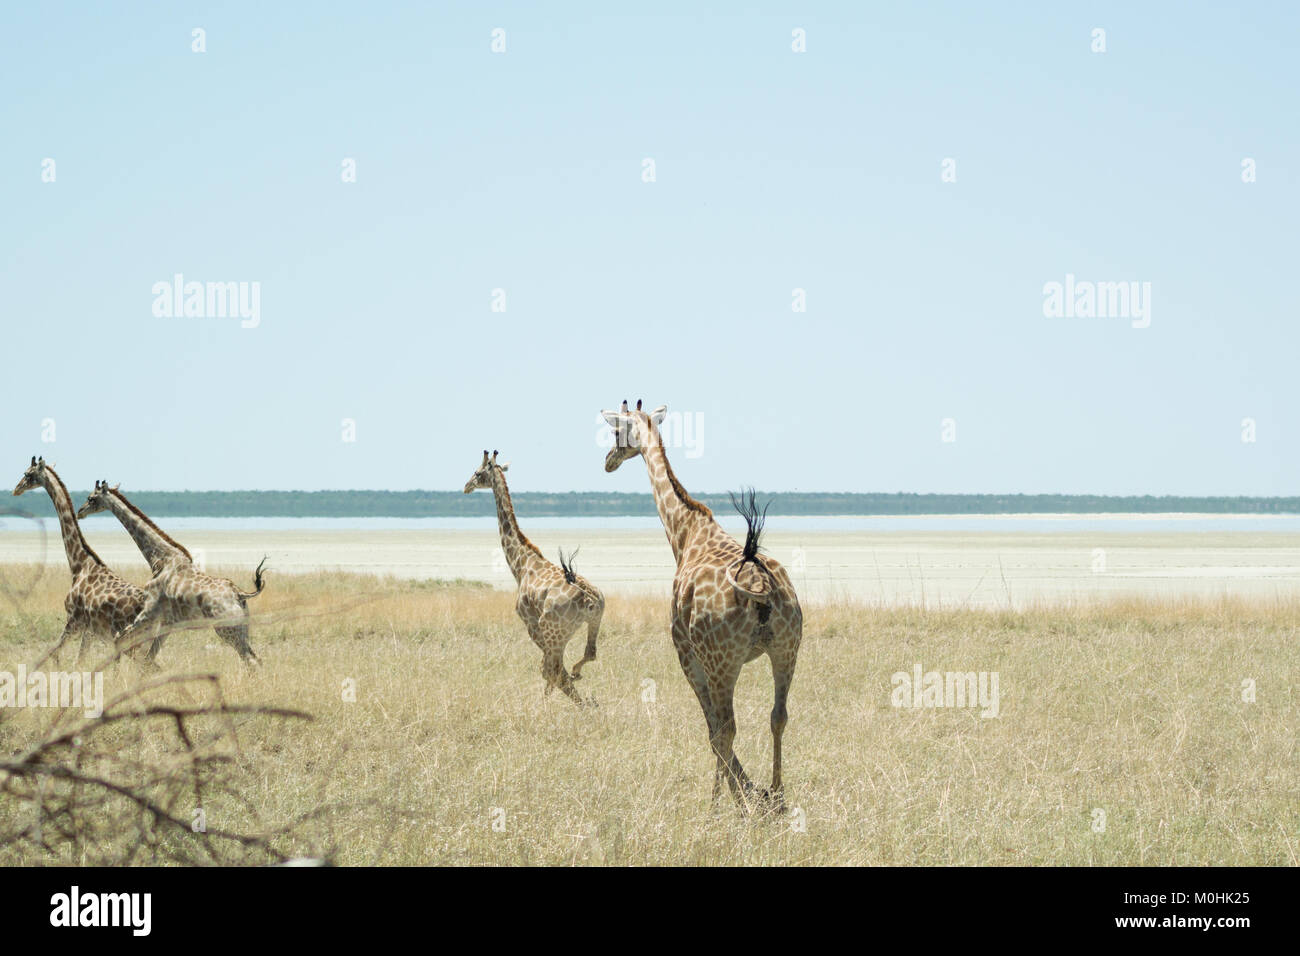 Small Herd of Galloping Giraffes - Stock Image